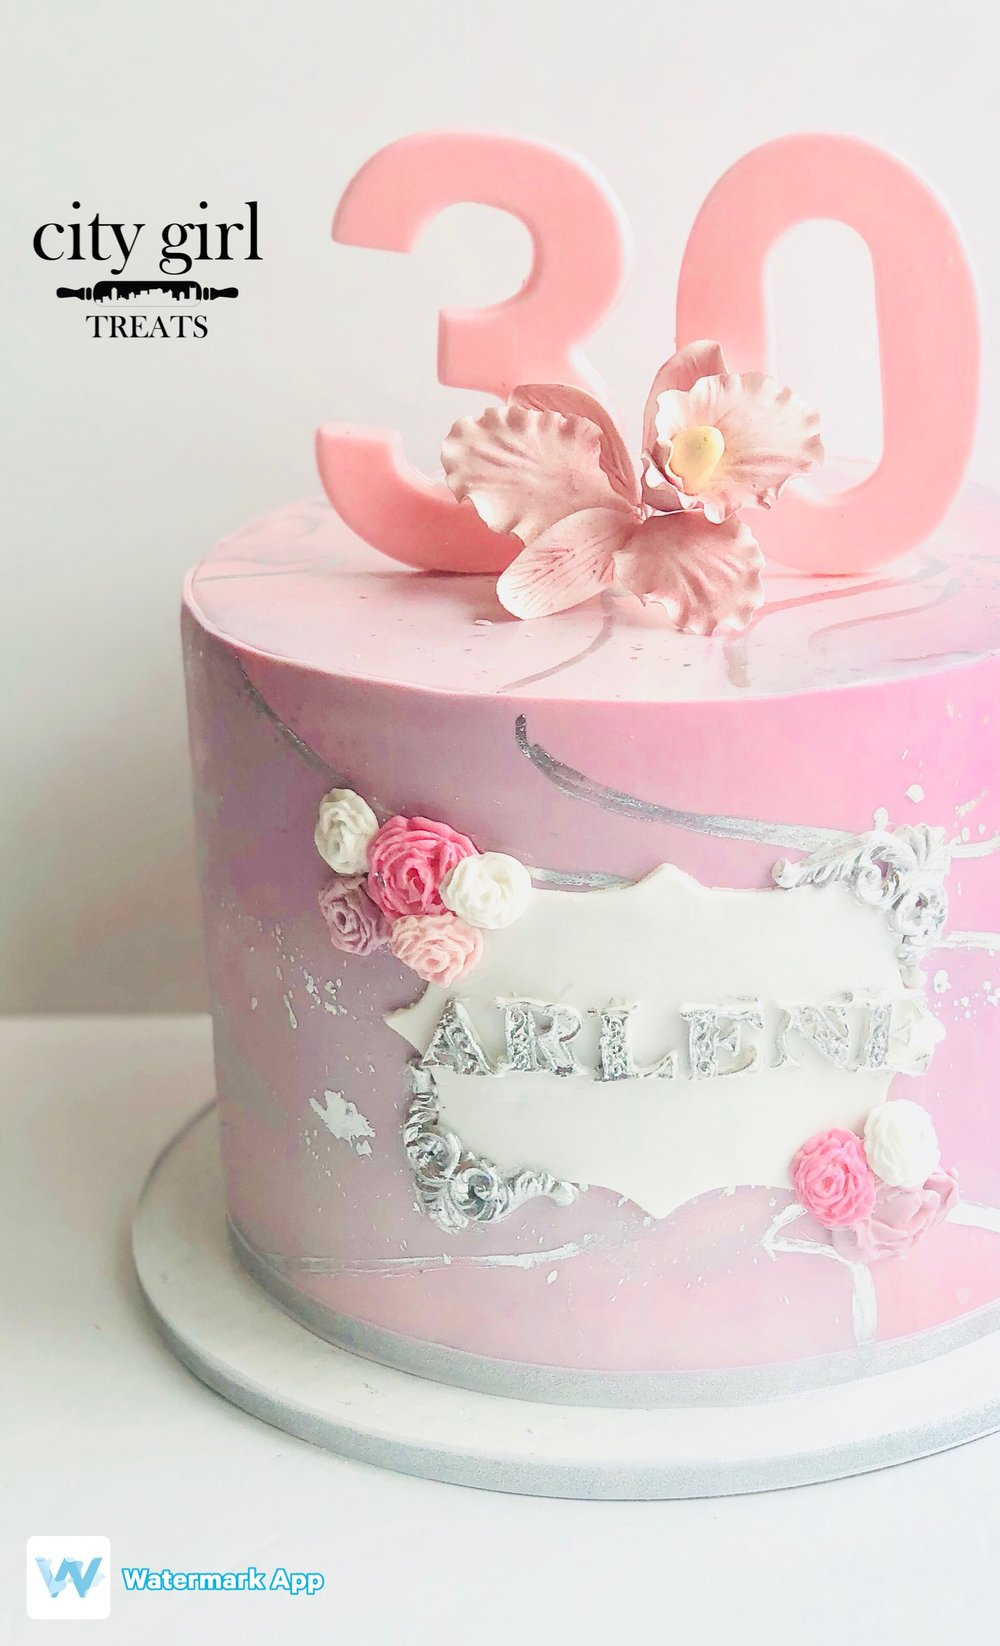 Designer Cakes Nashville TN Based Bakery City Girl Treats